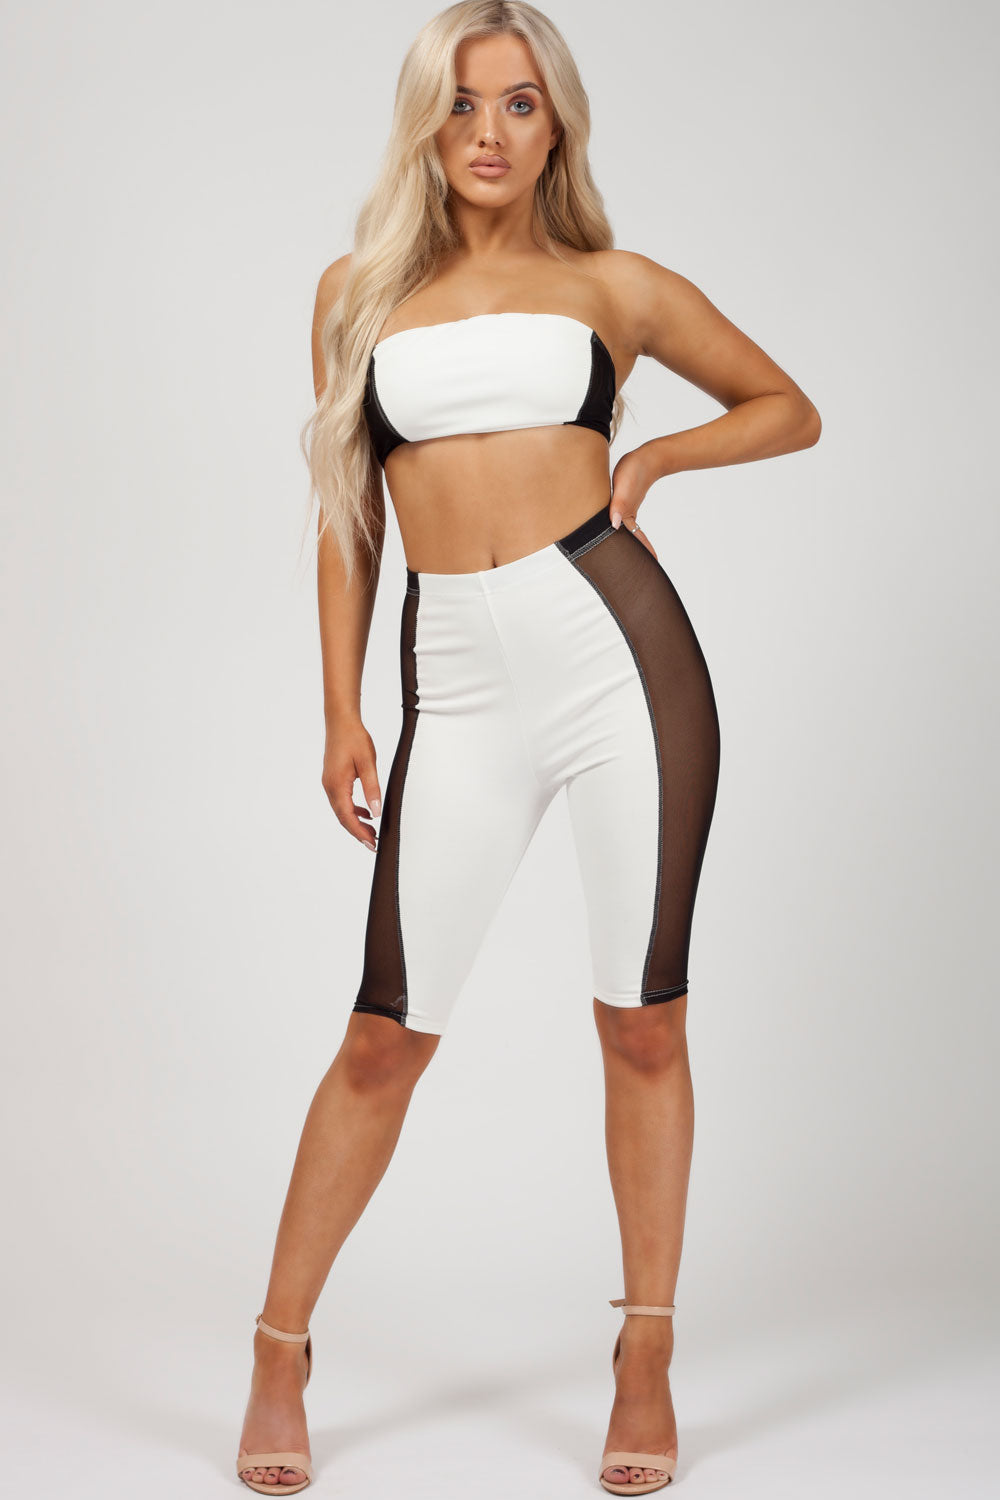 womens cycling shorts and crop top set uk styledup fashions